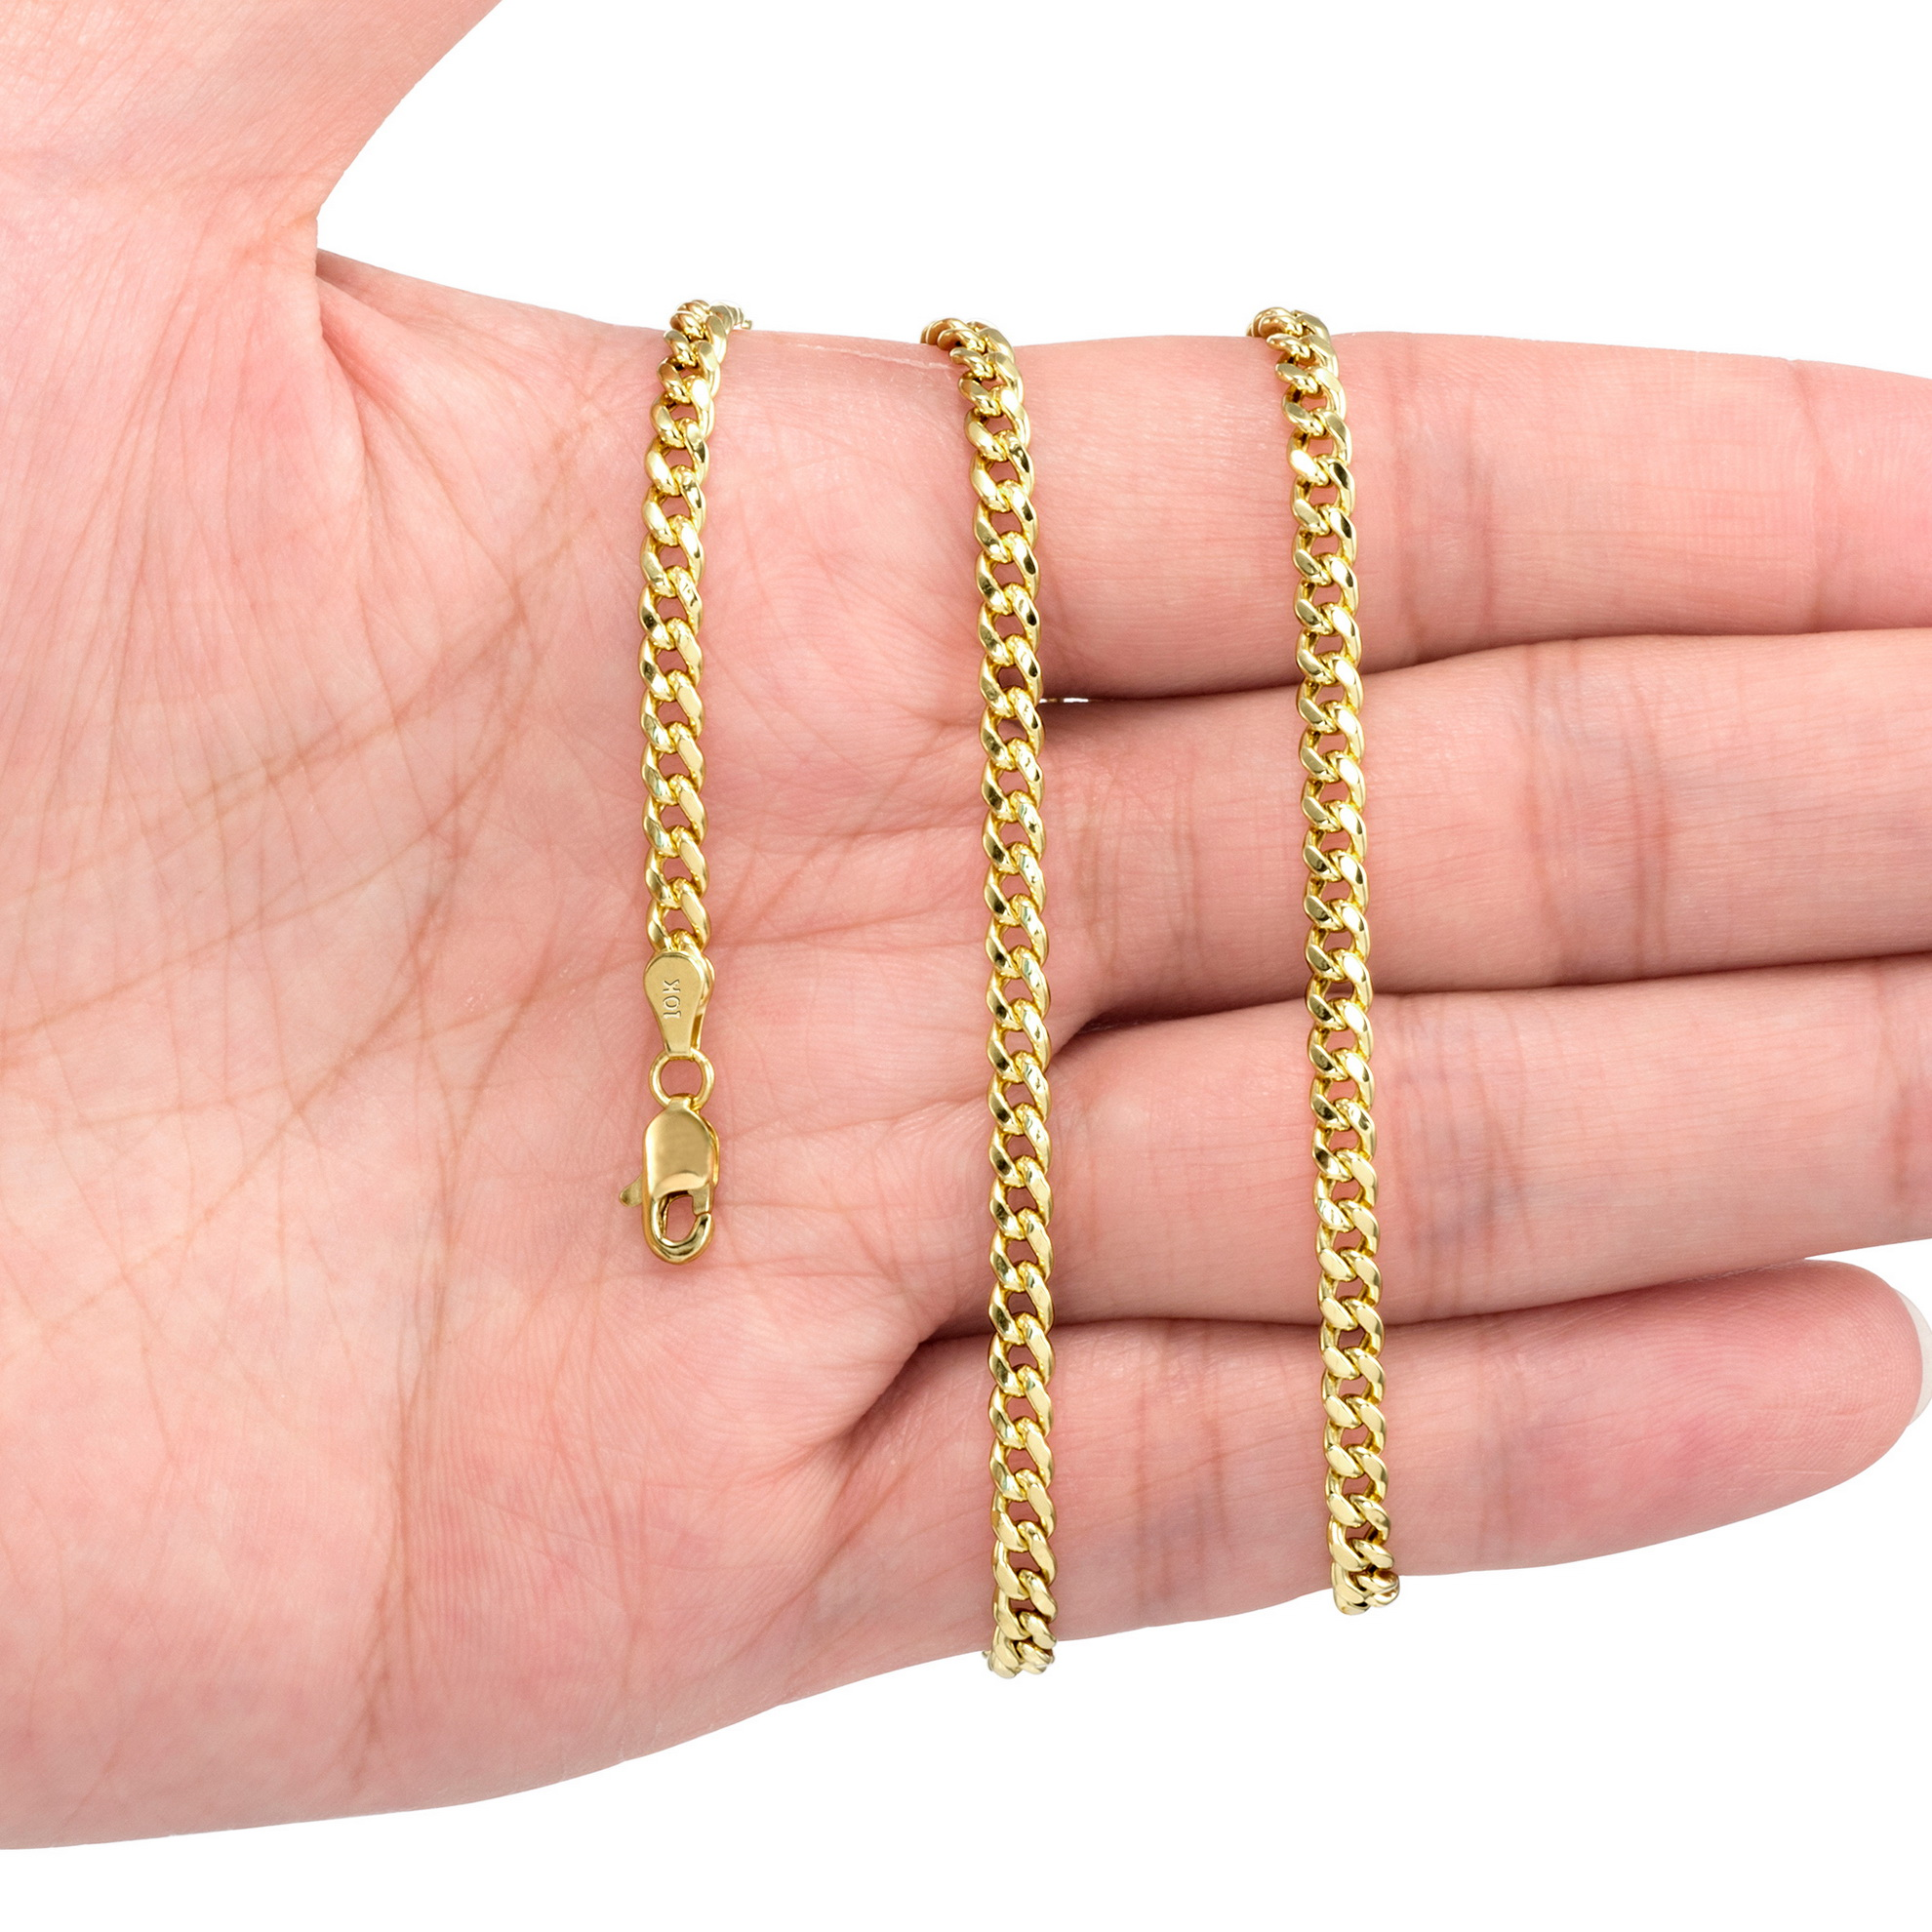 10K-Yellow-Gold-3-5mm-17mm-Real-Miami-Cuban-Link-Necklace-Chain-Bracelet-7-034-30-034 thumbnail 22